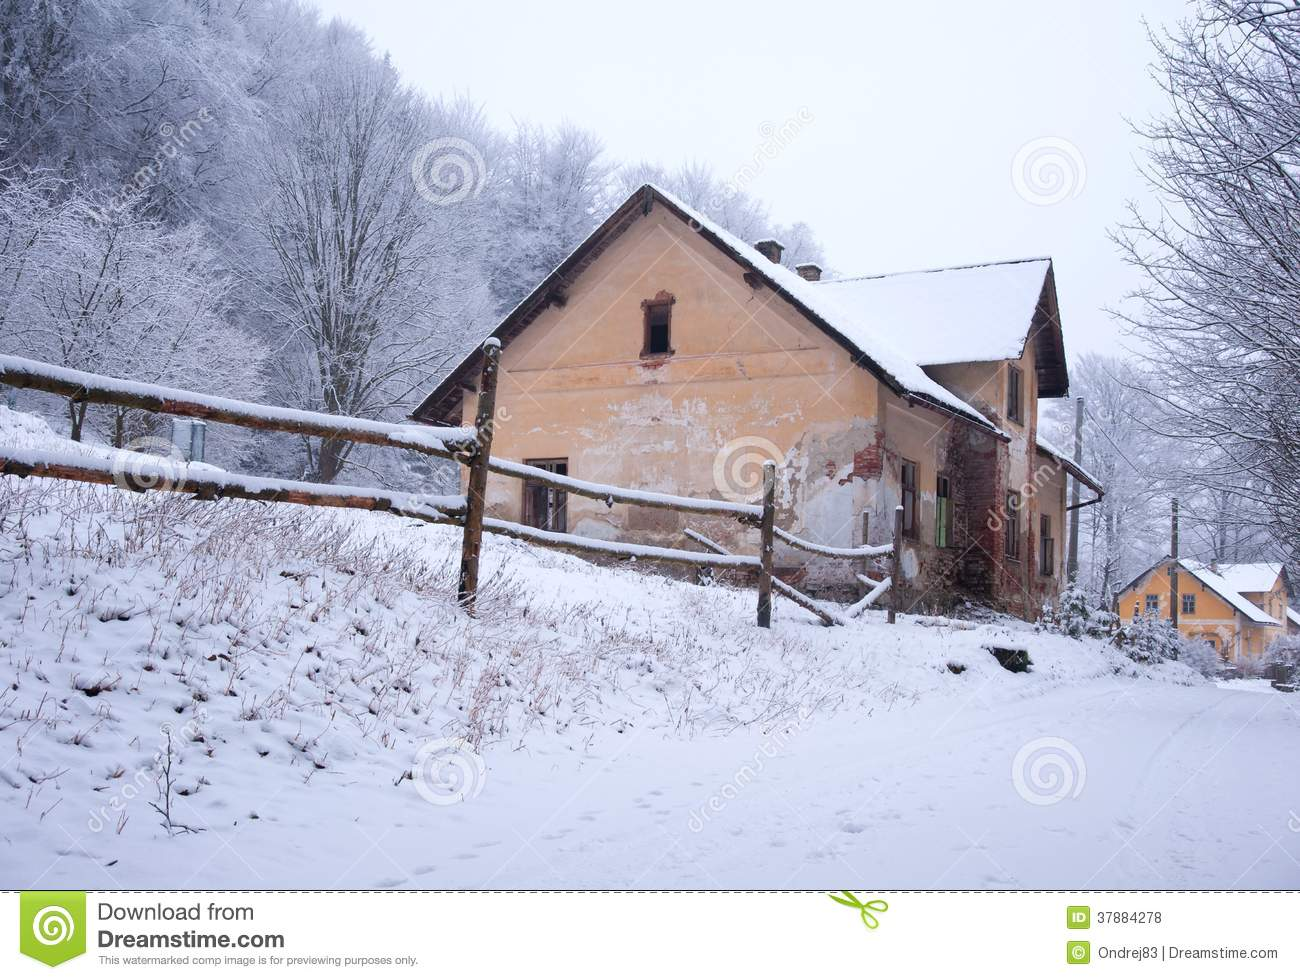 snow covered house - photo #26